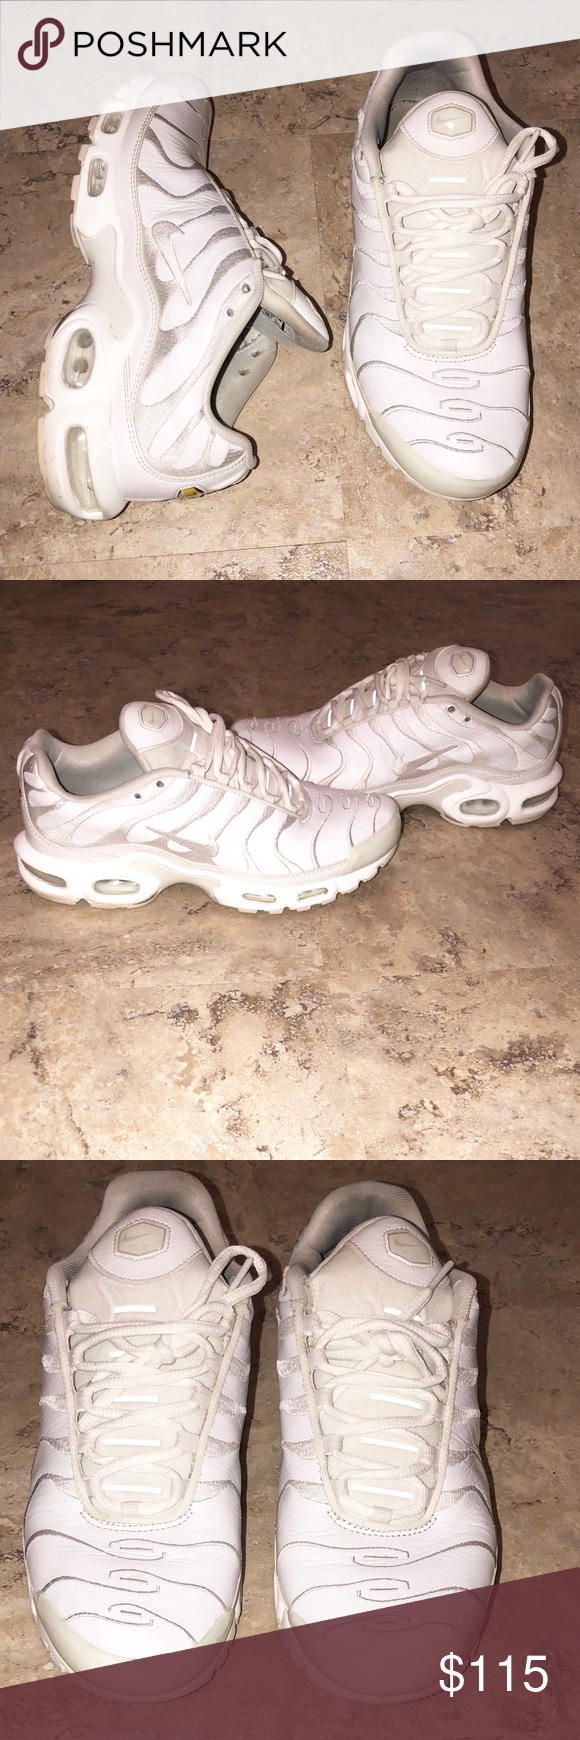 the best attitude 58ba1 886fb ... new zealand nike air max plus tn triple white mens size 9.5 pre owned.  doesnt